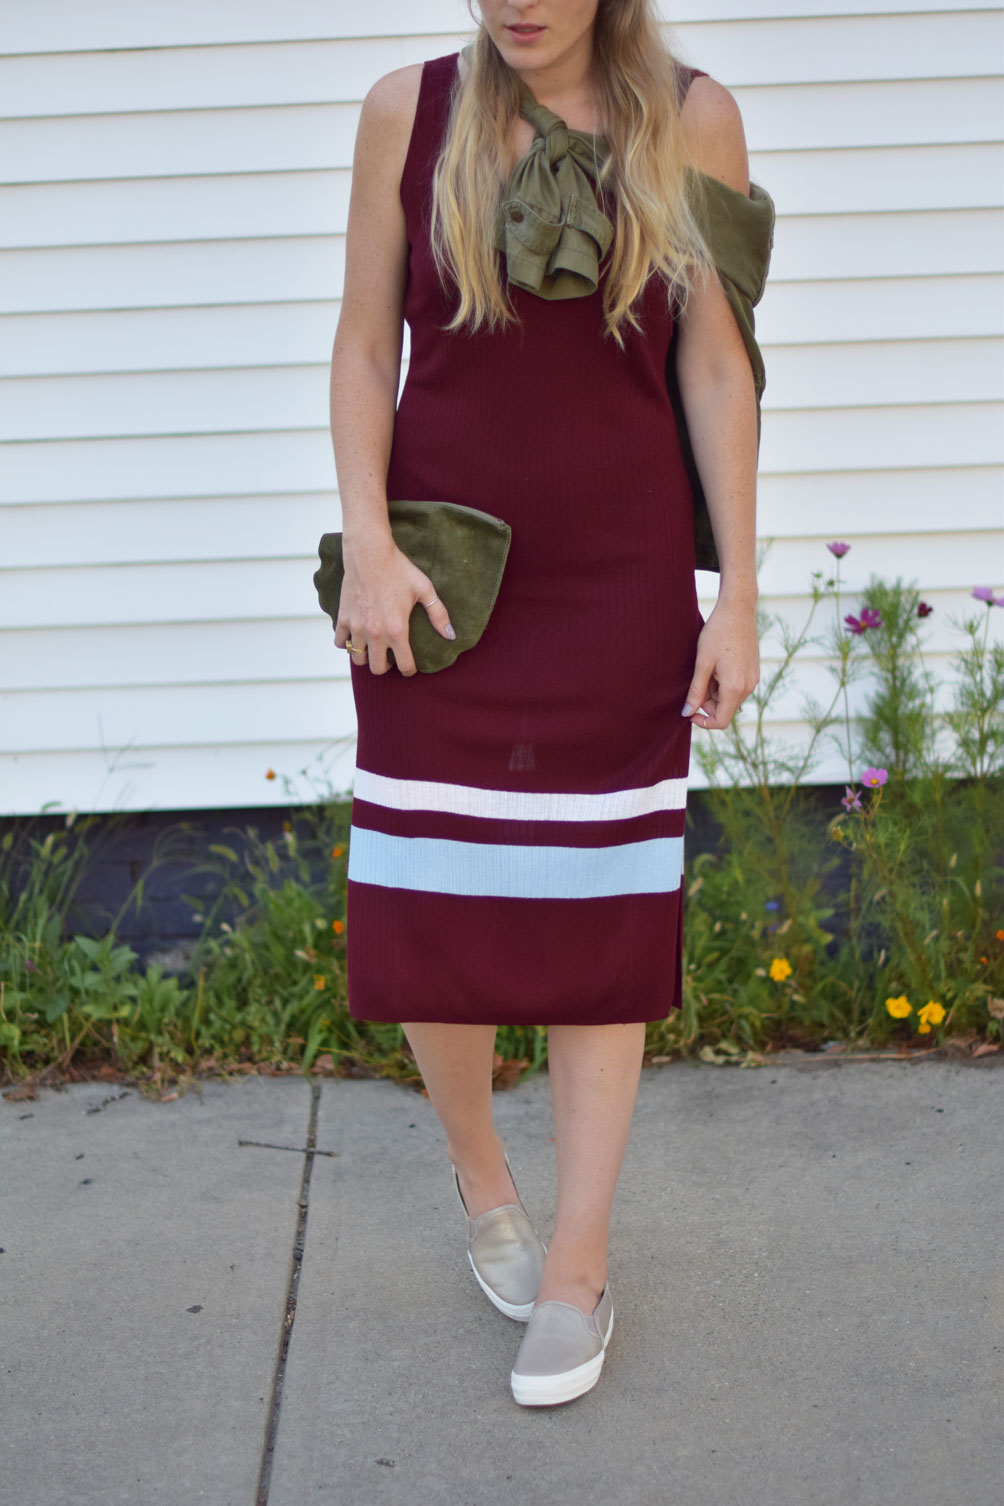 the perfect early fall outfit in a ribbed knit dress with slip-on platform sneakers and an army green jacket on Leslie Musser of one brass fox